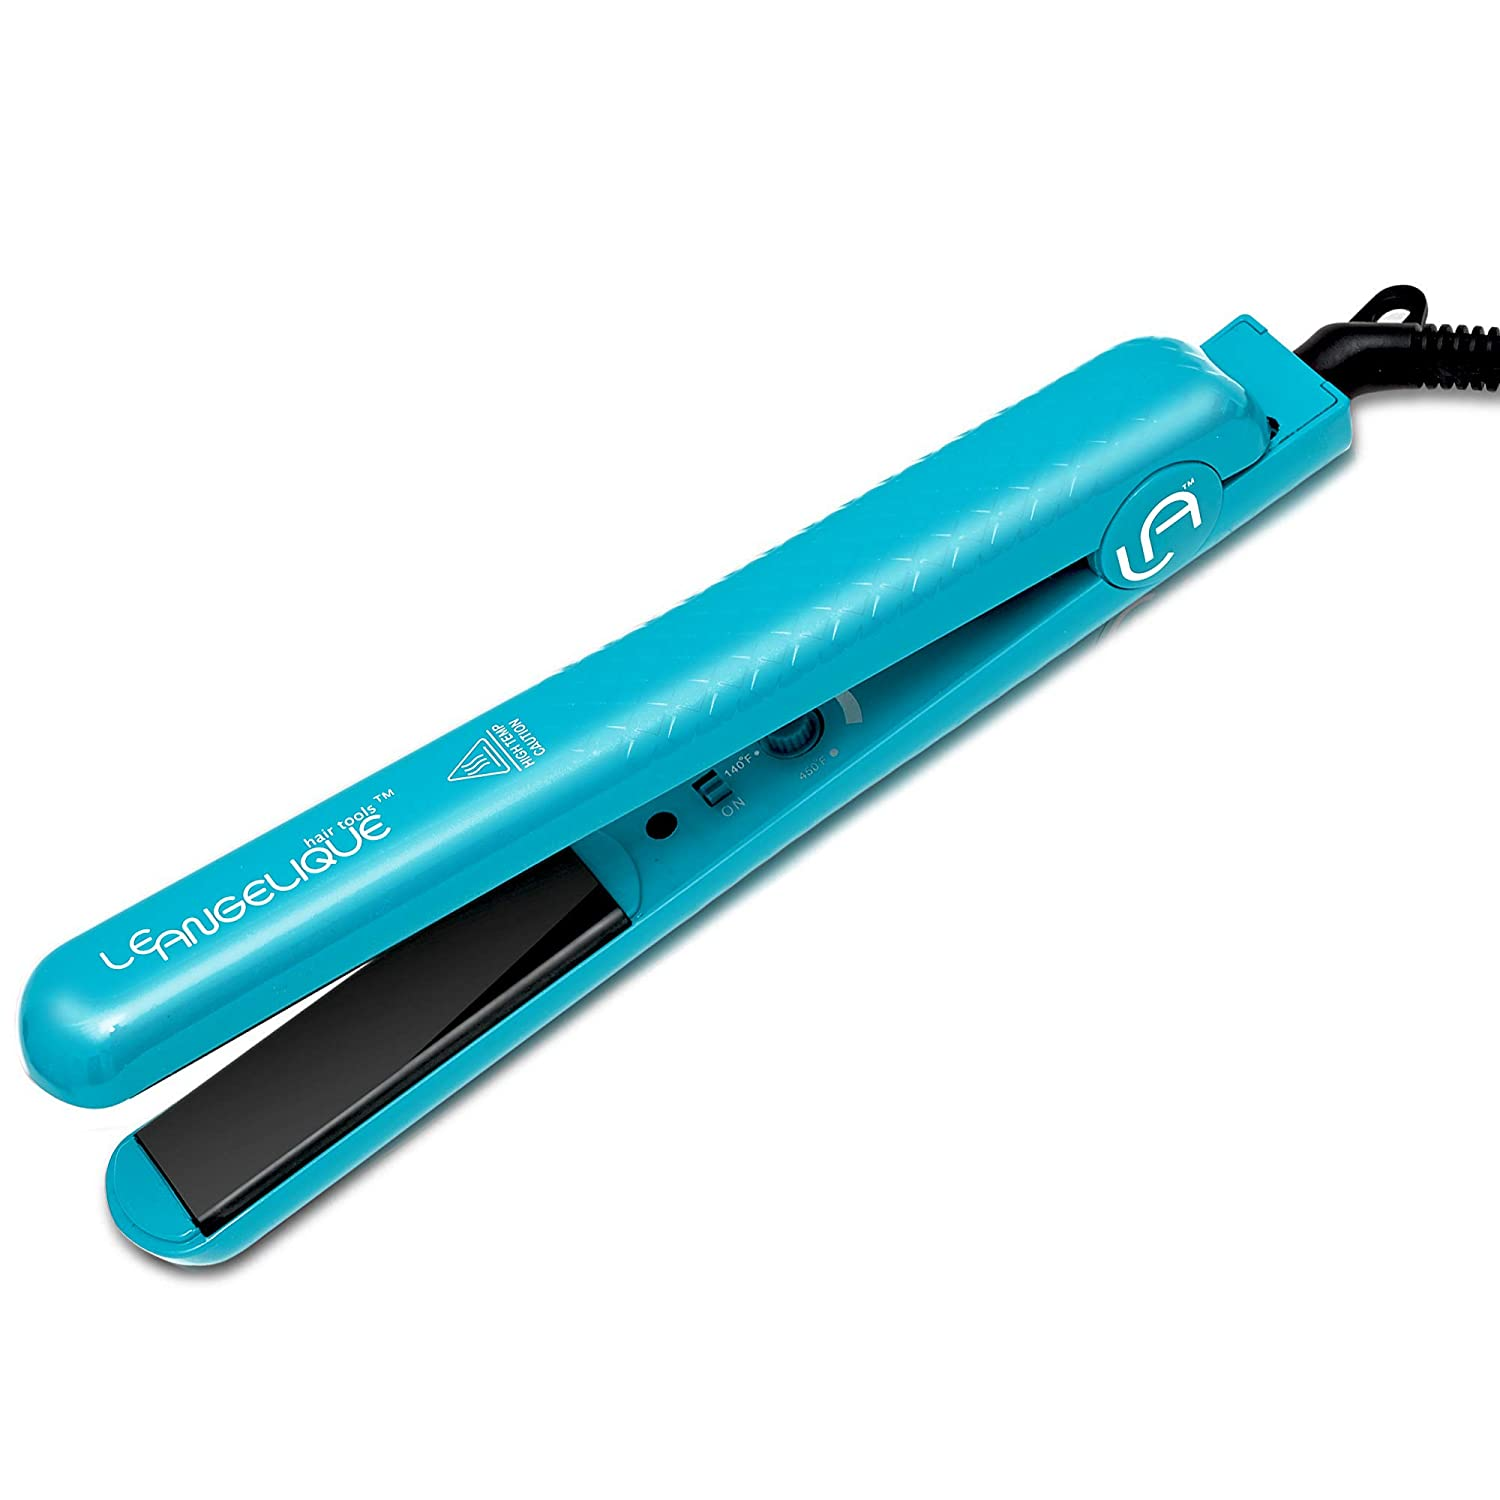 Le Angelique specialty shop Celebrity 1 inch OFFicial site Iron Flat Straightene Ceramic Hair